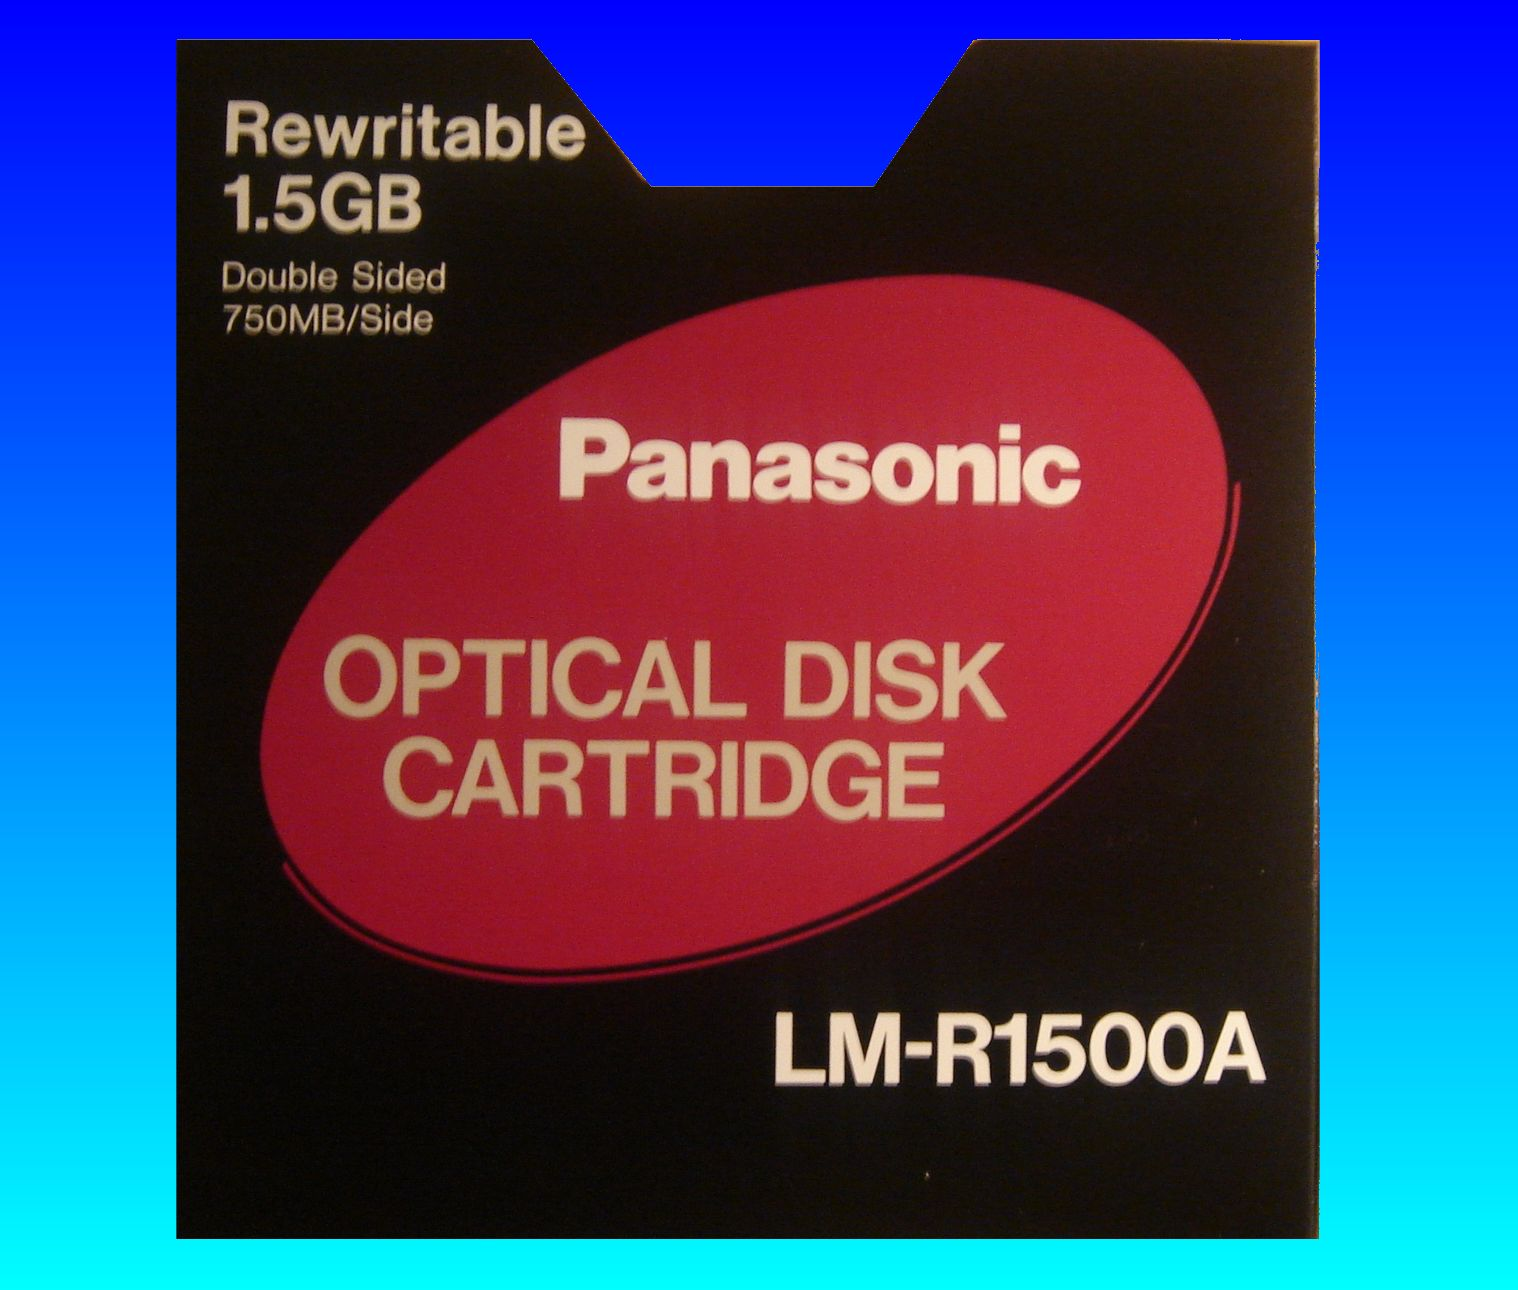 LM-R1500A 1.5GB Panasonic ReWritable Optical Disk Cartridge Extract Files Disk Conversion